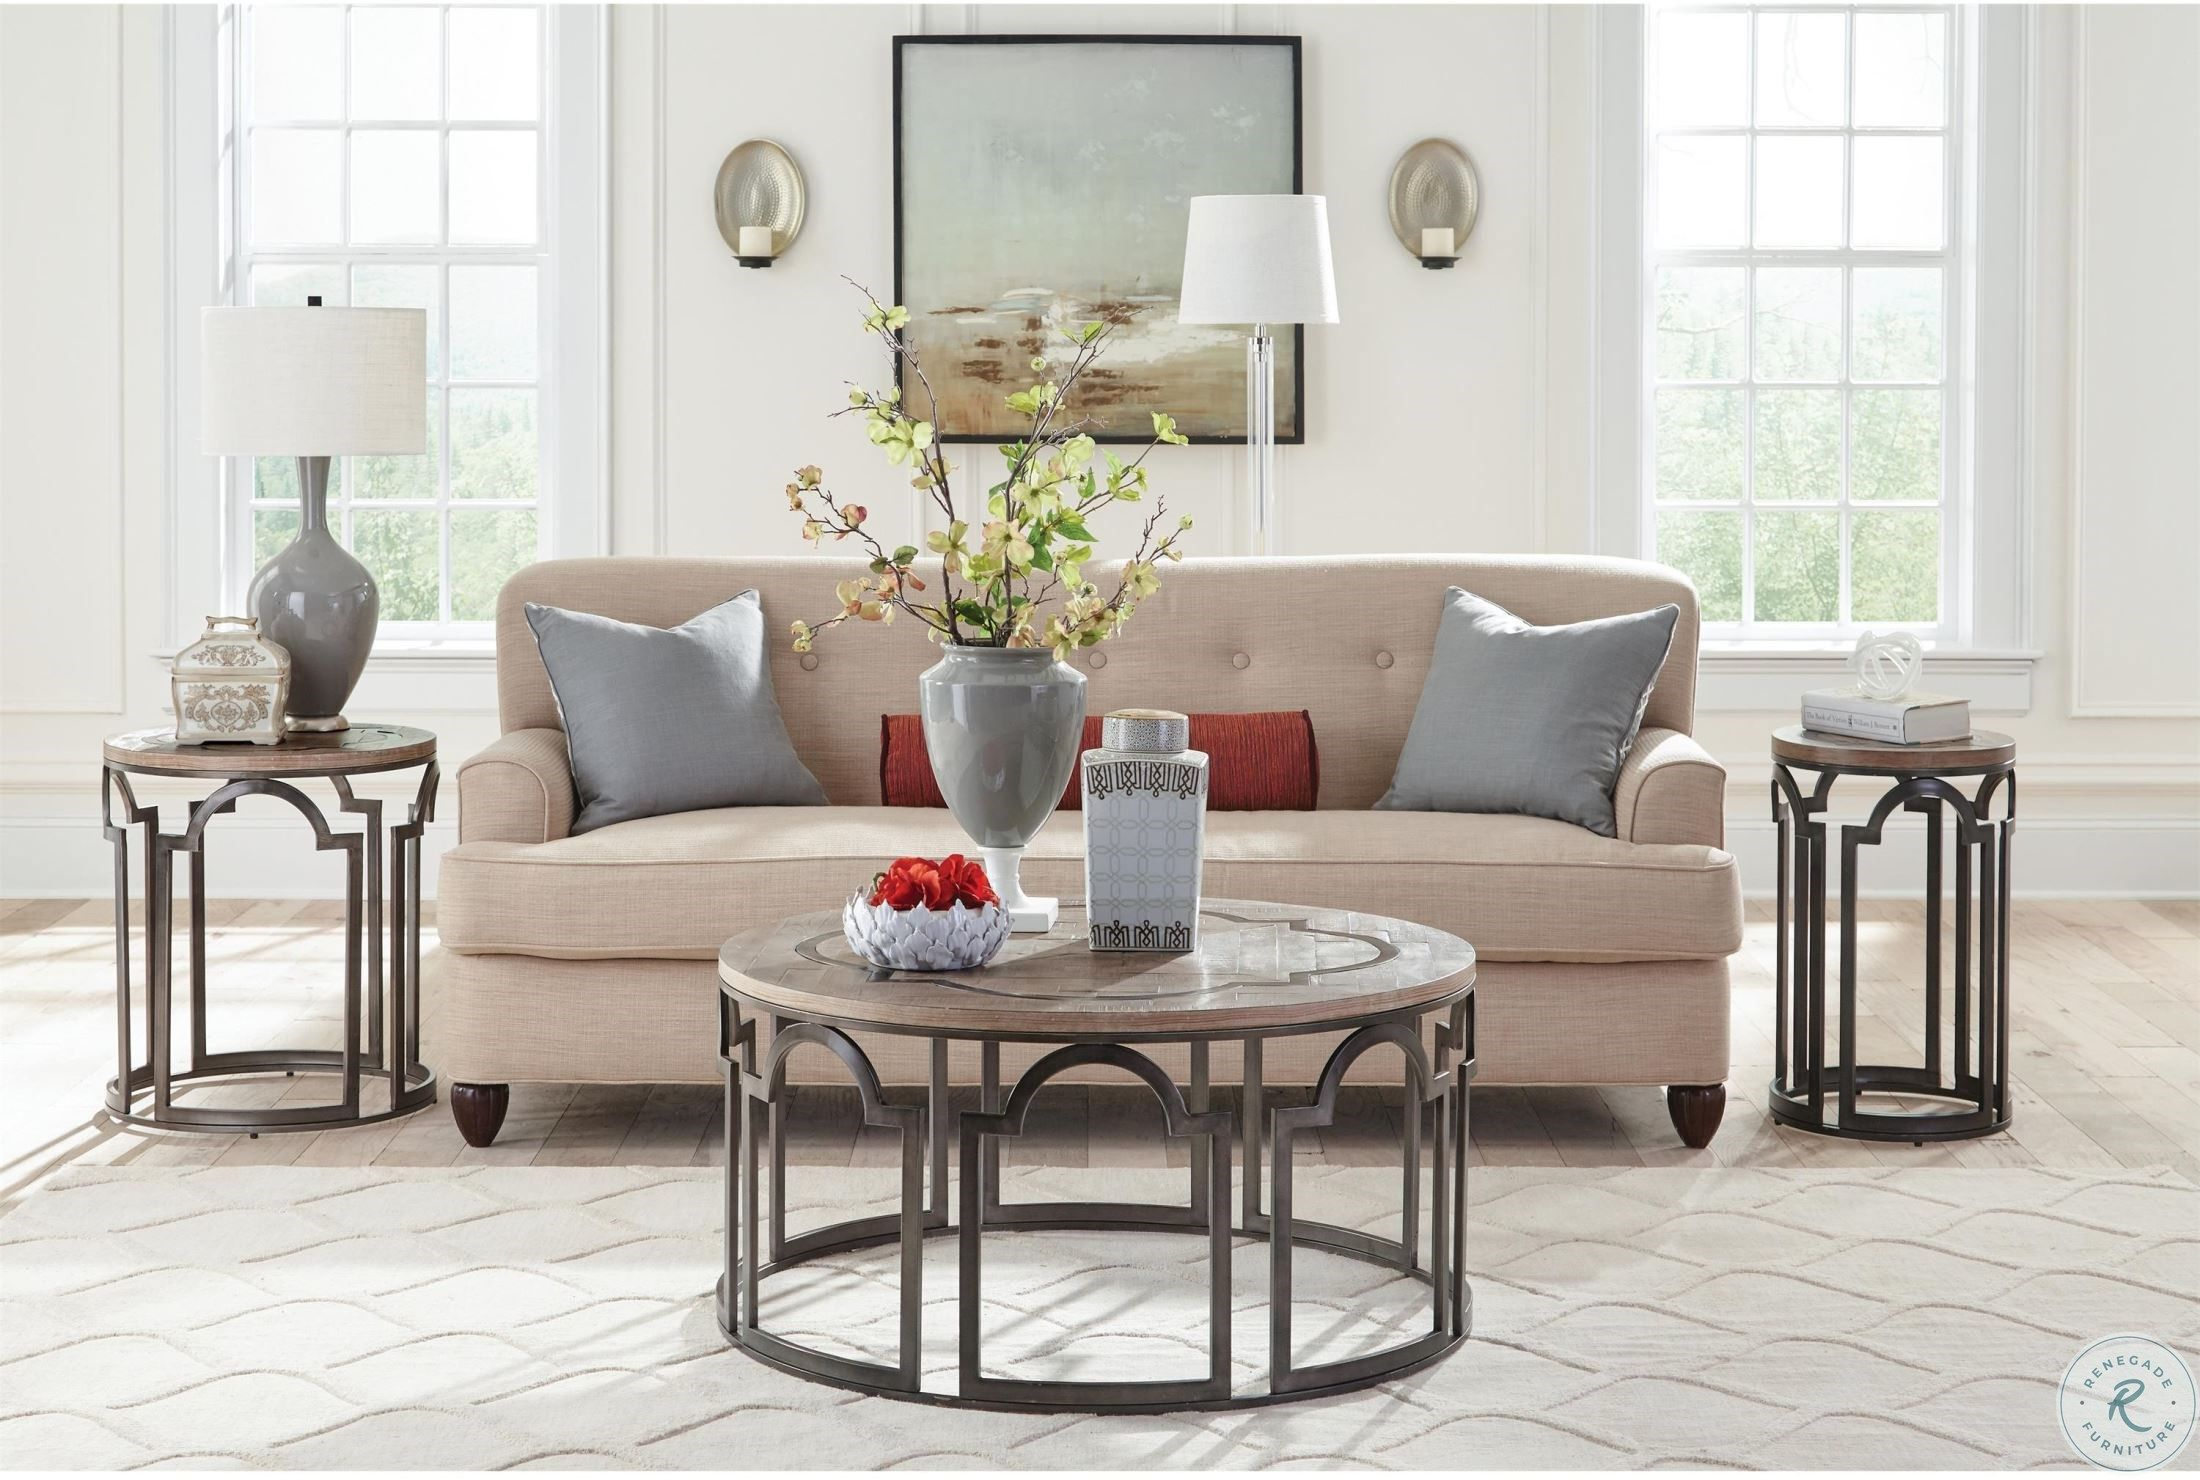 Comfyclouds Ivory Modular Sectional In 2021 Coffee Table Room Decor Living Room Decor [ 1480 x 2200 Pixel ]